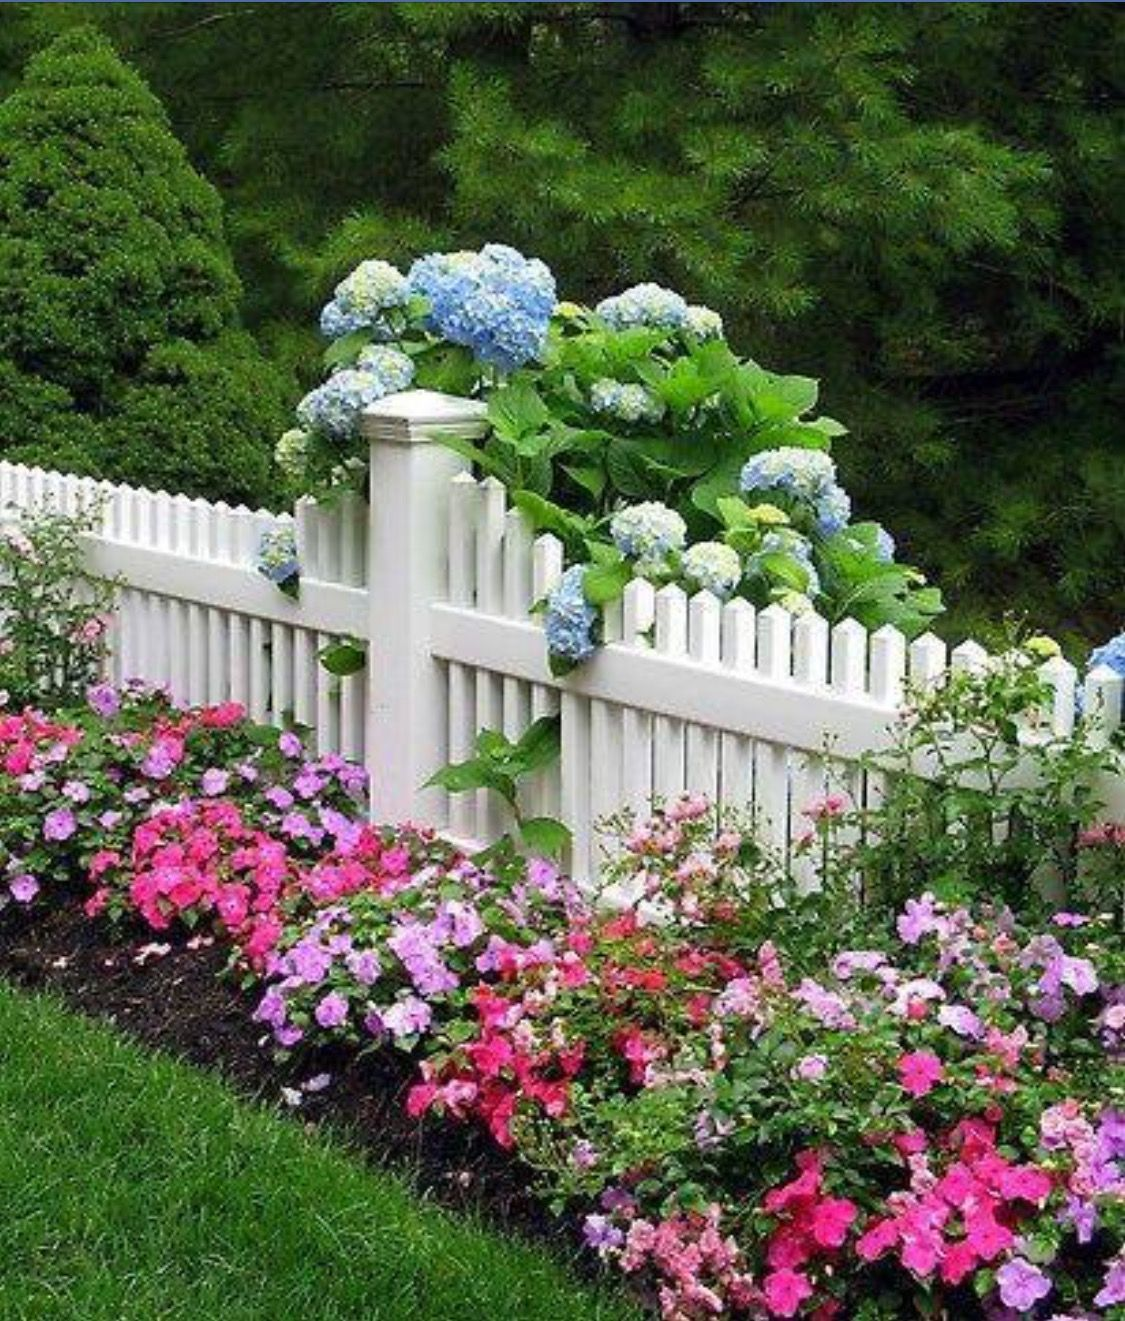 Flowers Along Front Of Fence. Colorful Picket Fence Flowers Garden Love  When I First Looked At This Picture I Thought It Was My Back Yard.